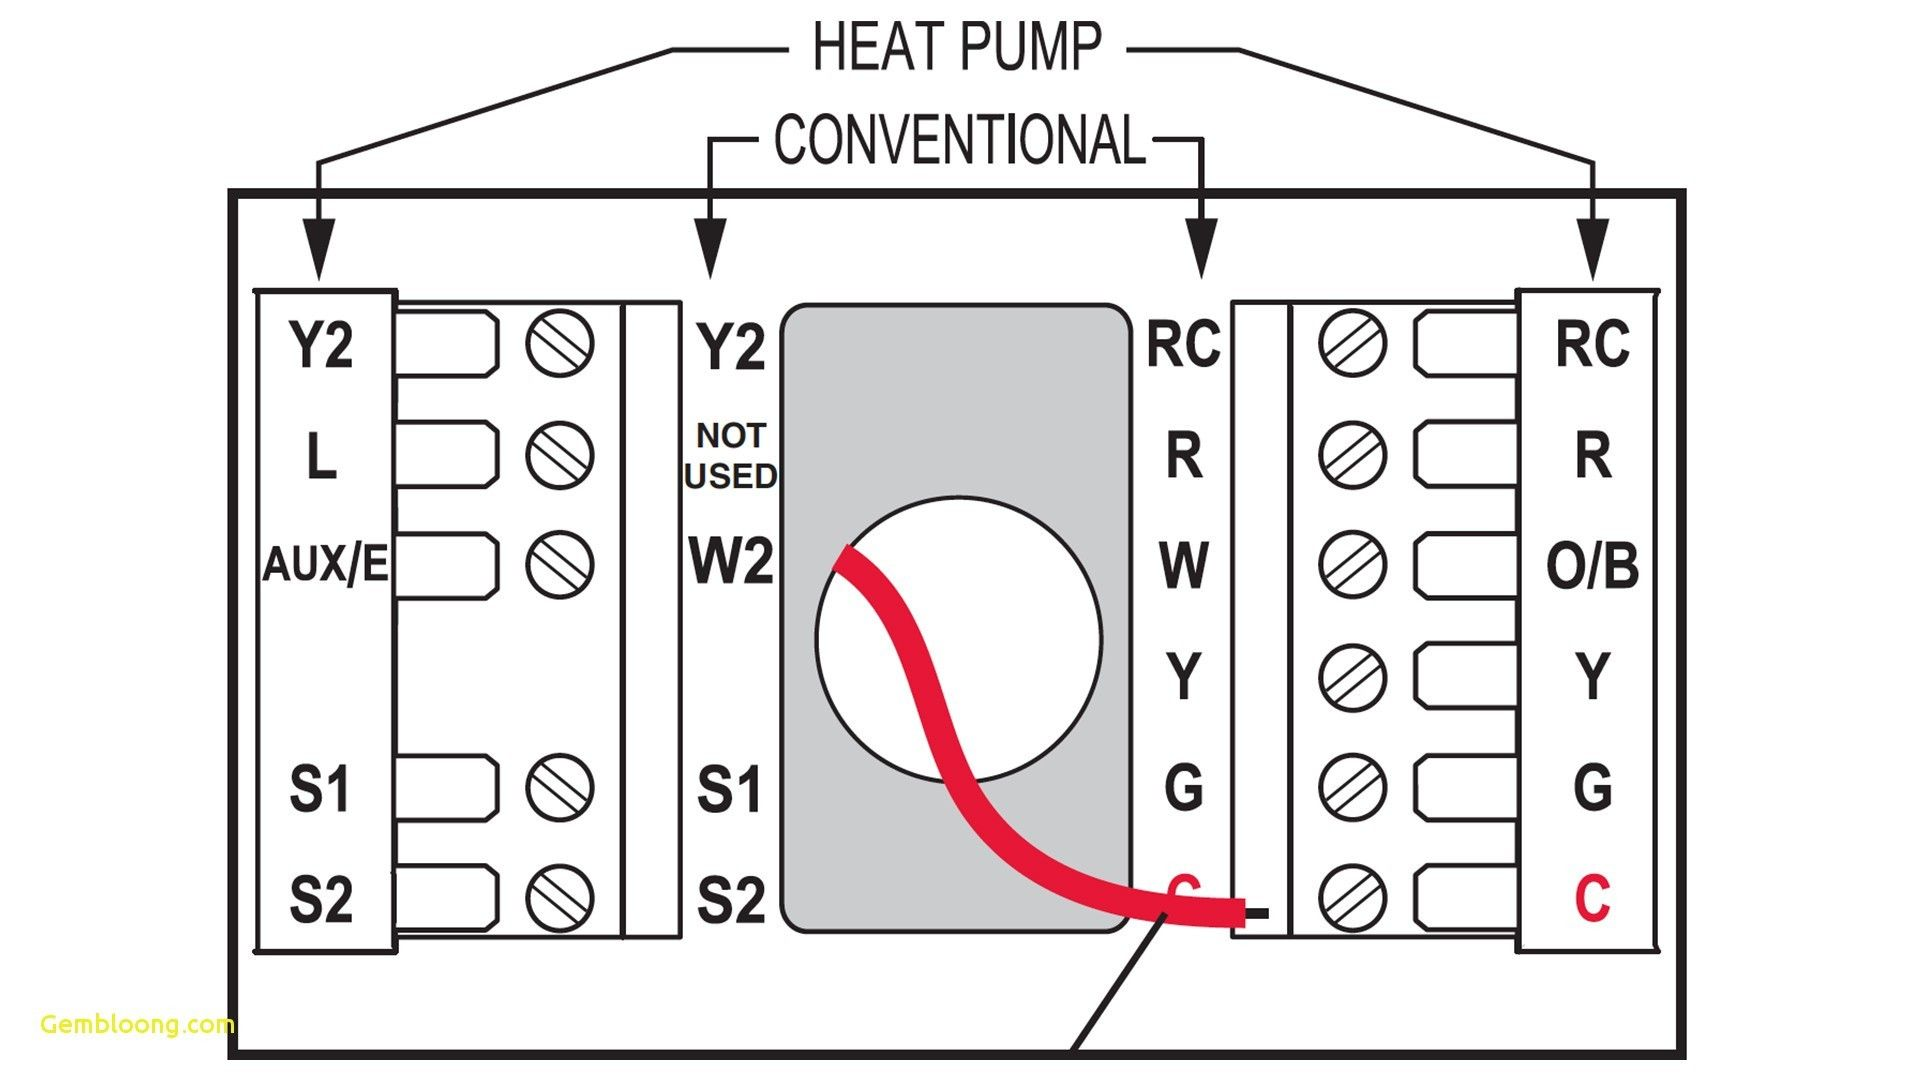 Unique Honeywell T6360b Room Thermostat Wiring Diagram Diagram Diagramsample Diagramtemplate W Thermostat Wiring Thermostat Installation Heating Thermostat